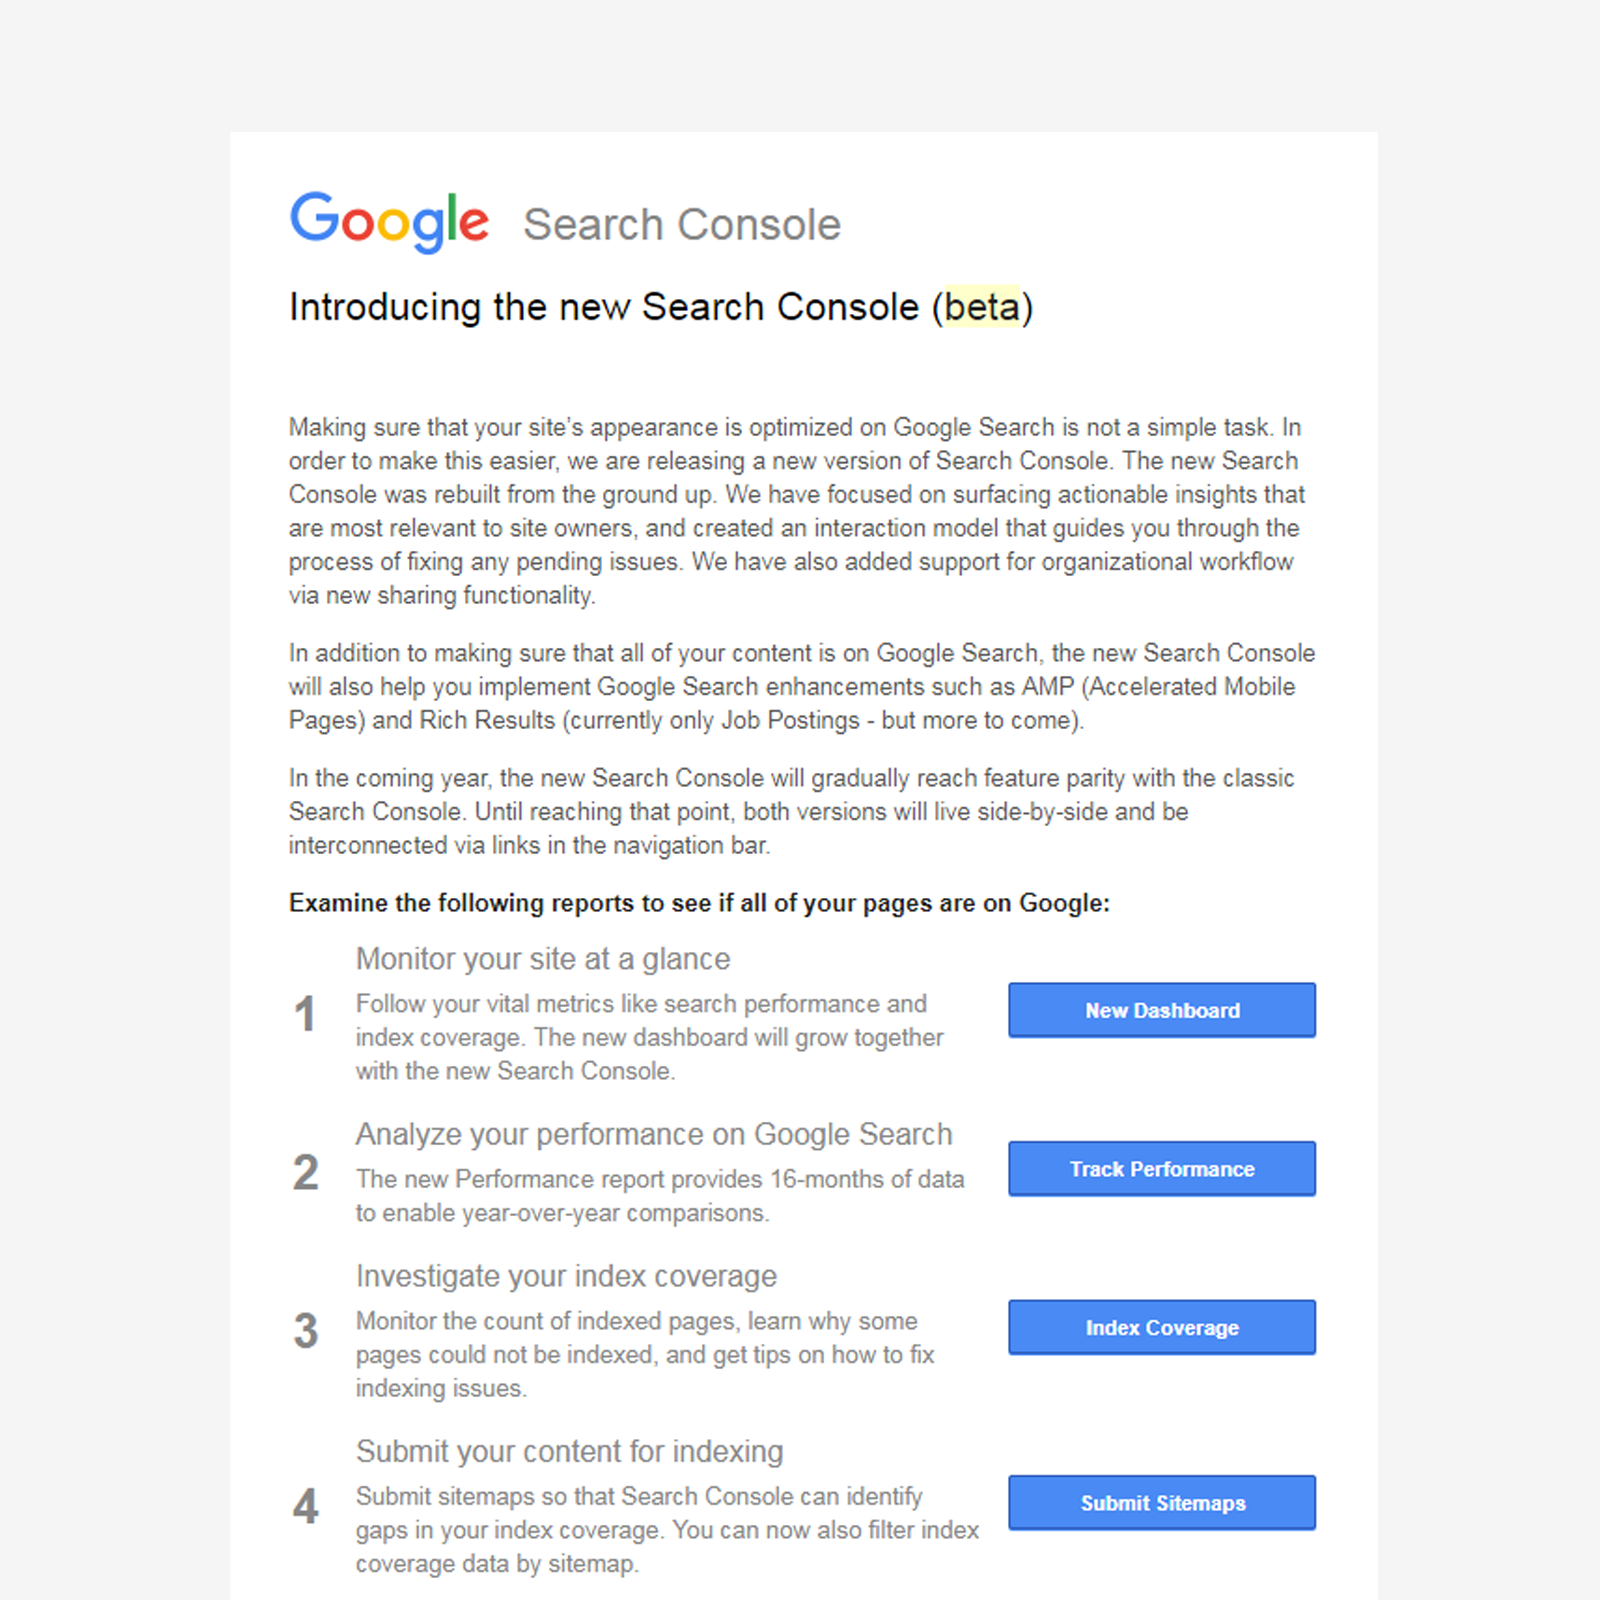 Google%20Search%20Console%20Beta%20Uitnodiging